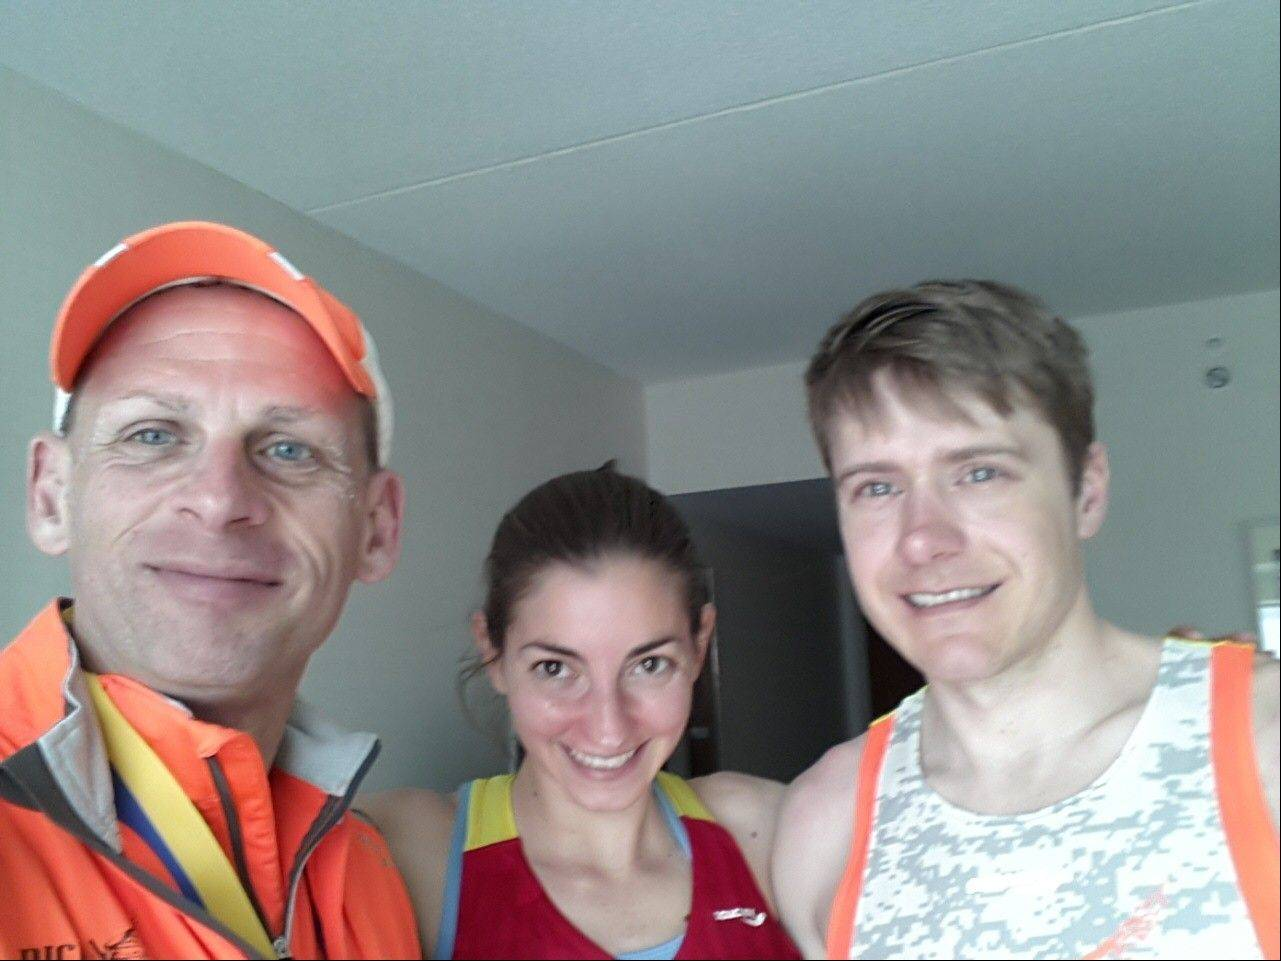 Ray Gobis, left, of Oak Forest, poses with friends Sherri and Steve Breese of Palatine before running the Boston Marathon Monday. They were not hurt and said they initially thought the explosion was fireworks.